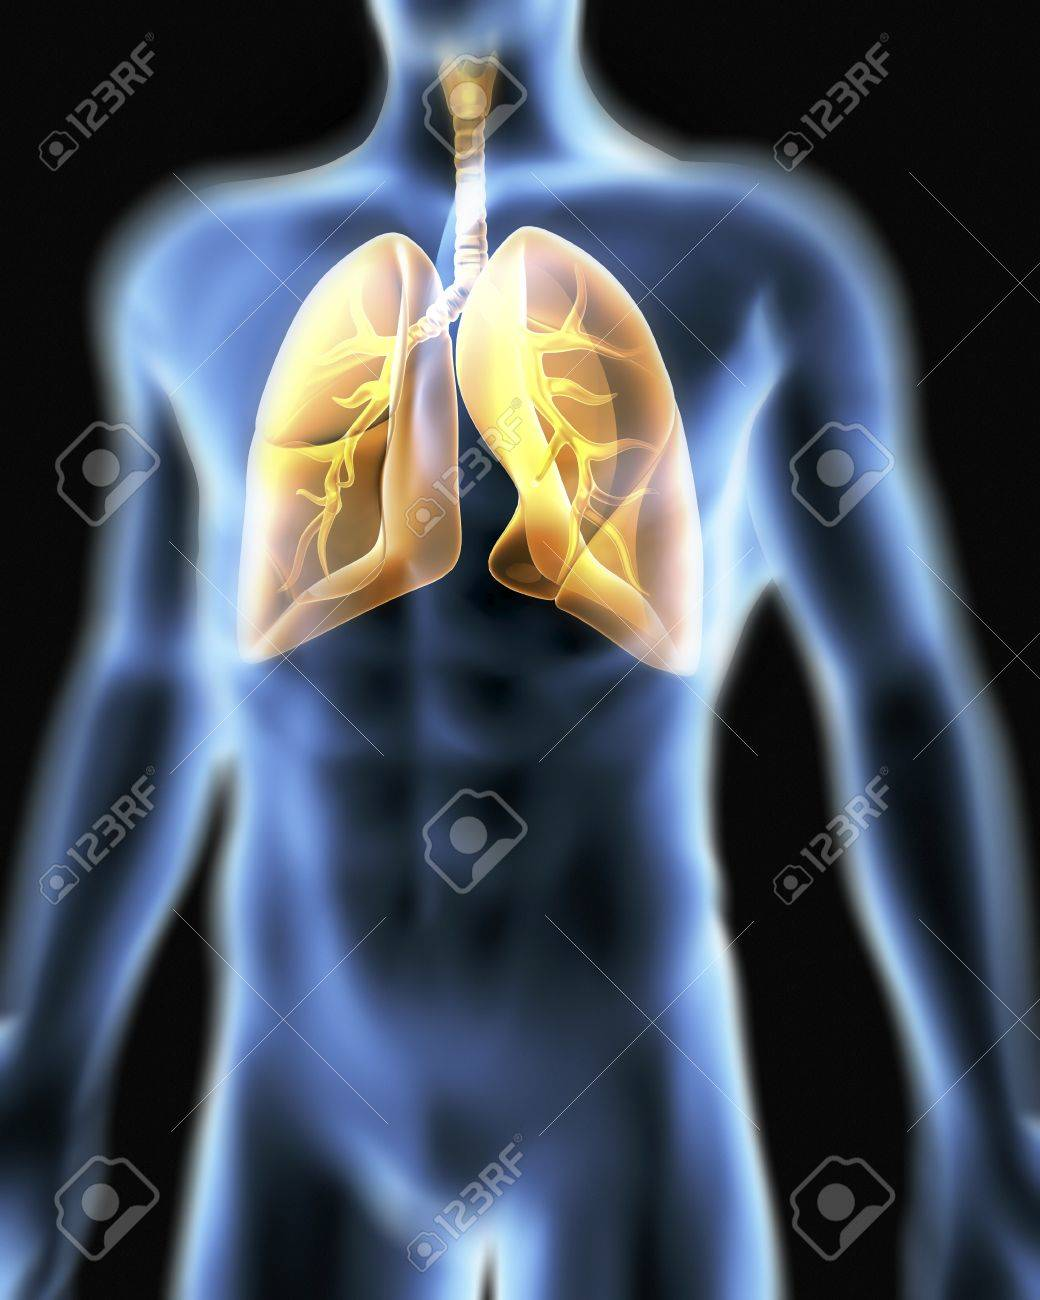 Respiratory systemputer artwork of a male torso and the computer artwork of a male torso and the respiratory systemshowing lungs ccuart Image collections